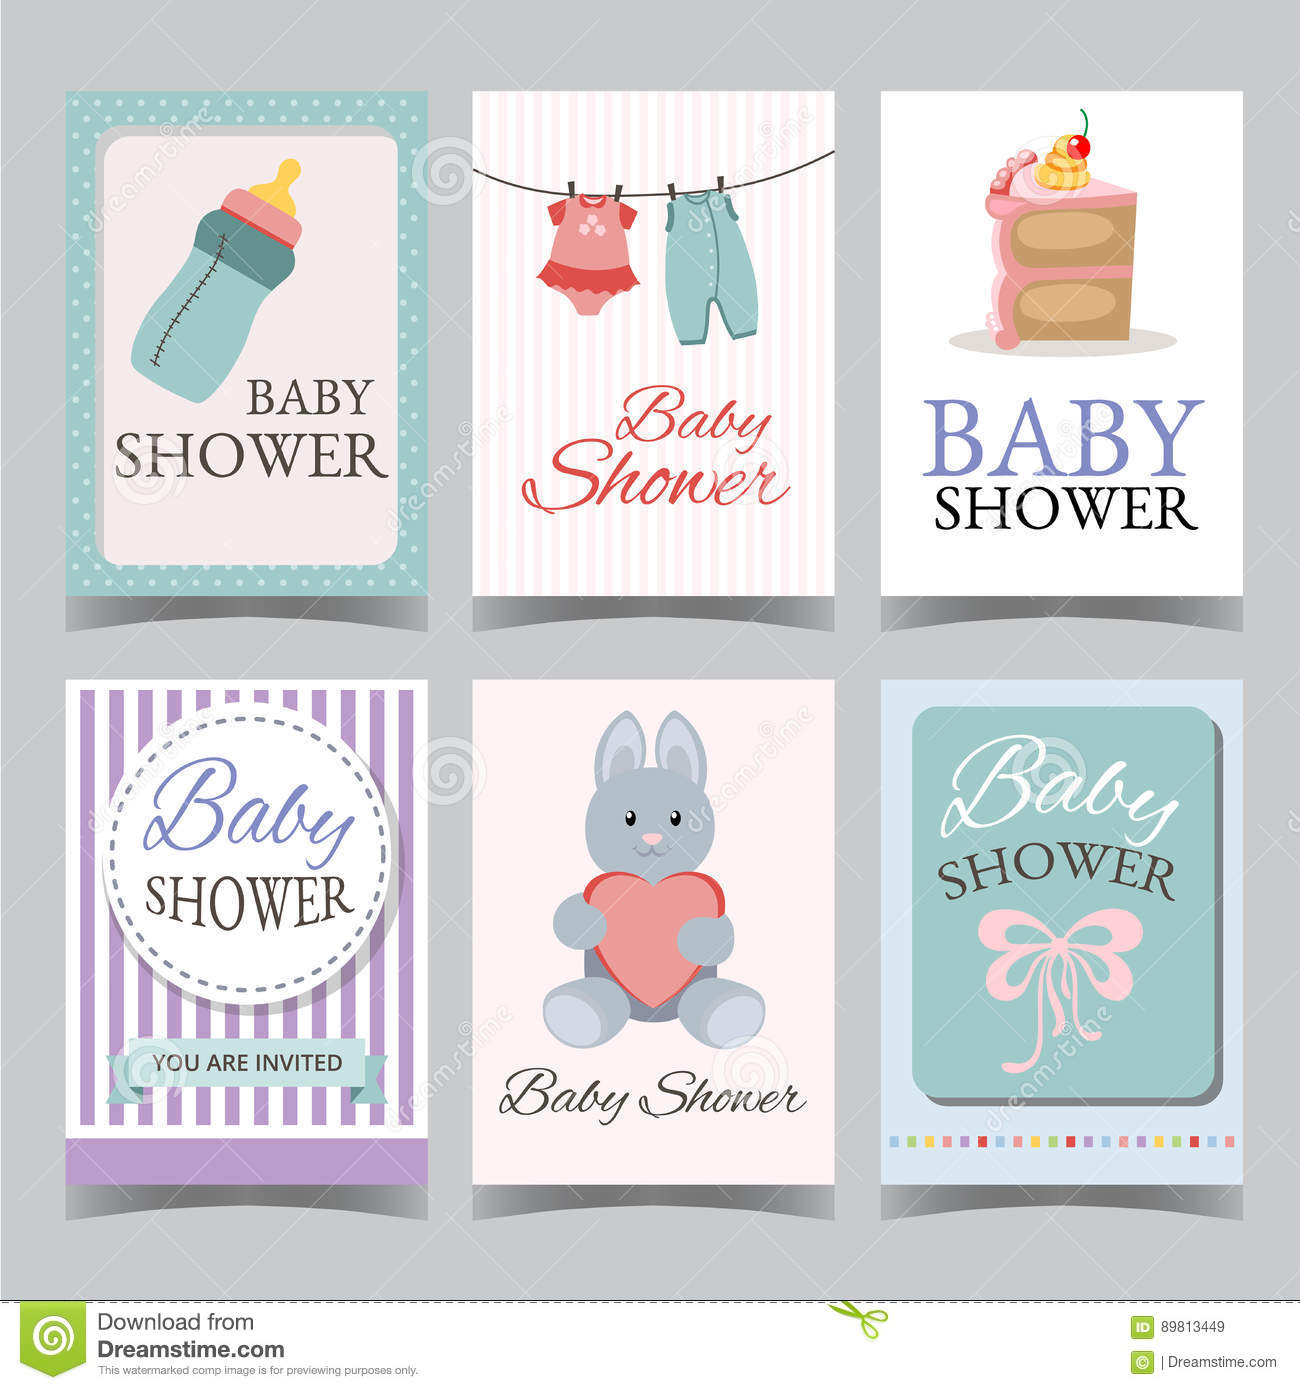 brunito shower card baby - photo #48